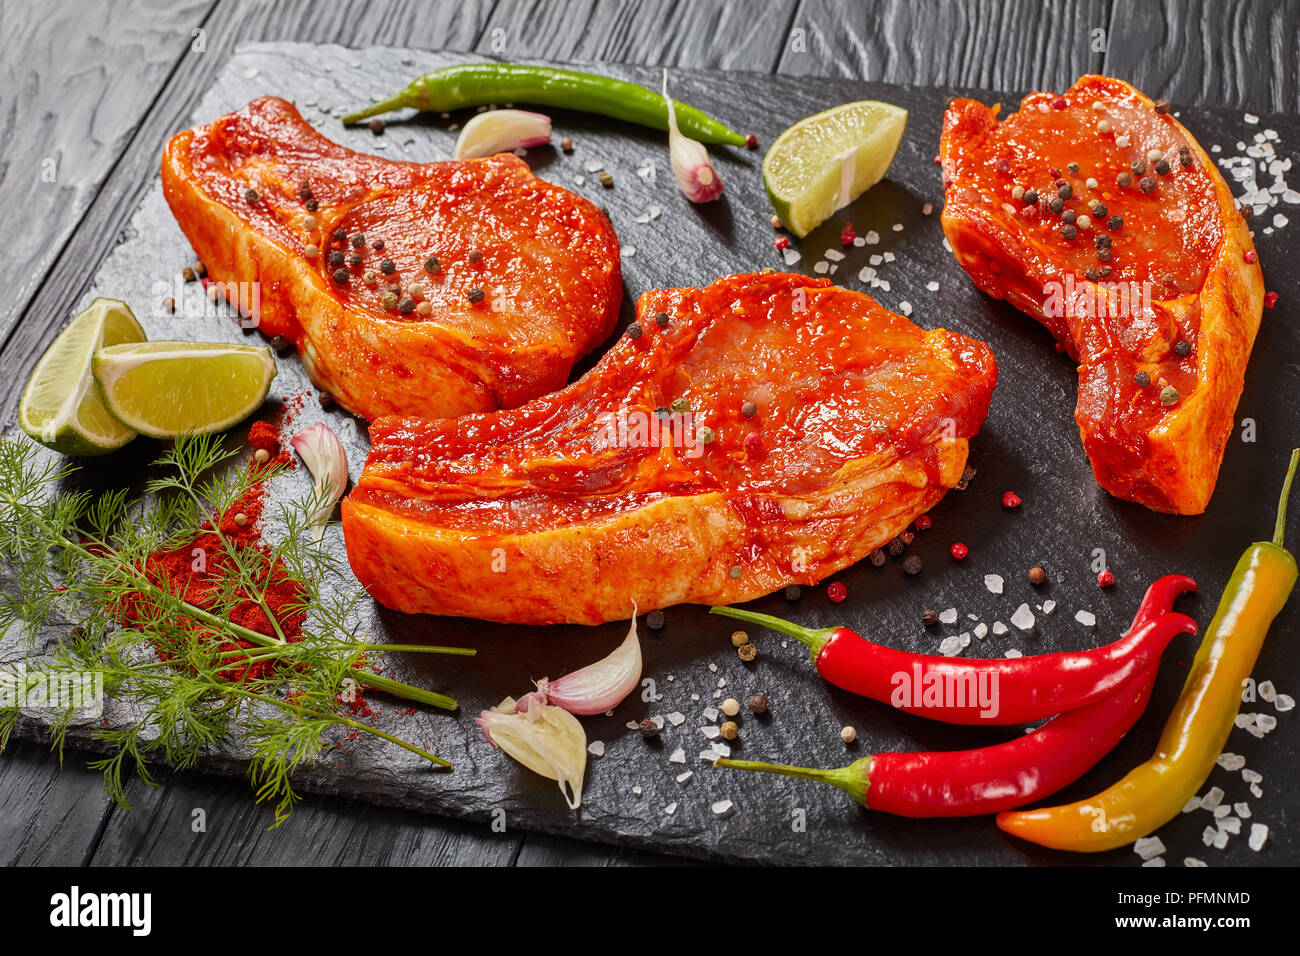 raw pork chops prepared to cook, marinated with spices and red sriracha sauce on black slate tray with chili pepper, salt, lime slices and spices, vie Stock Photo